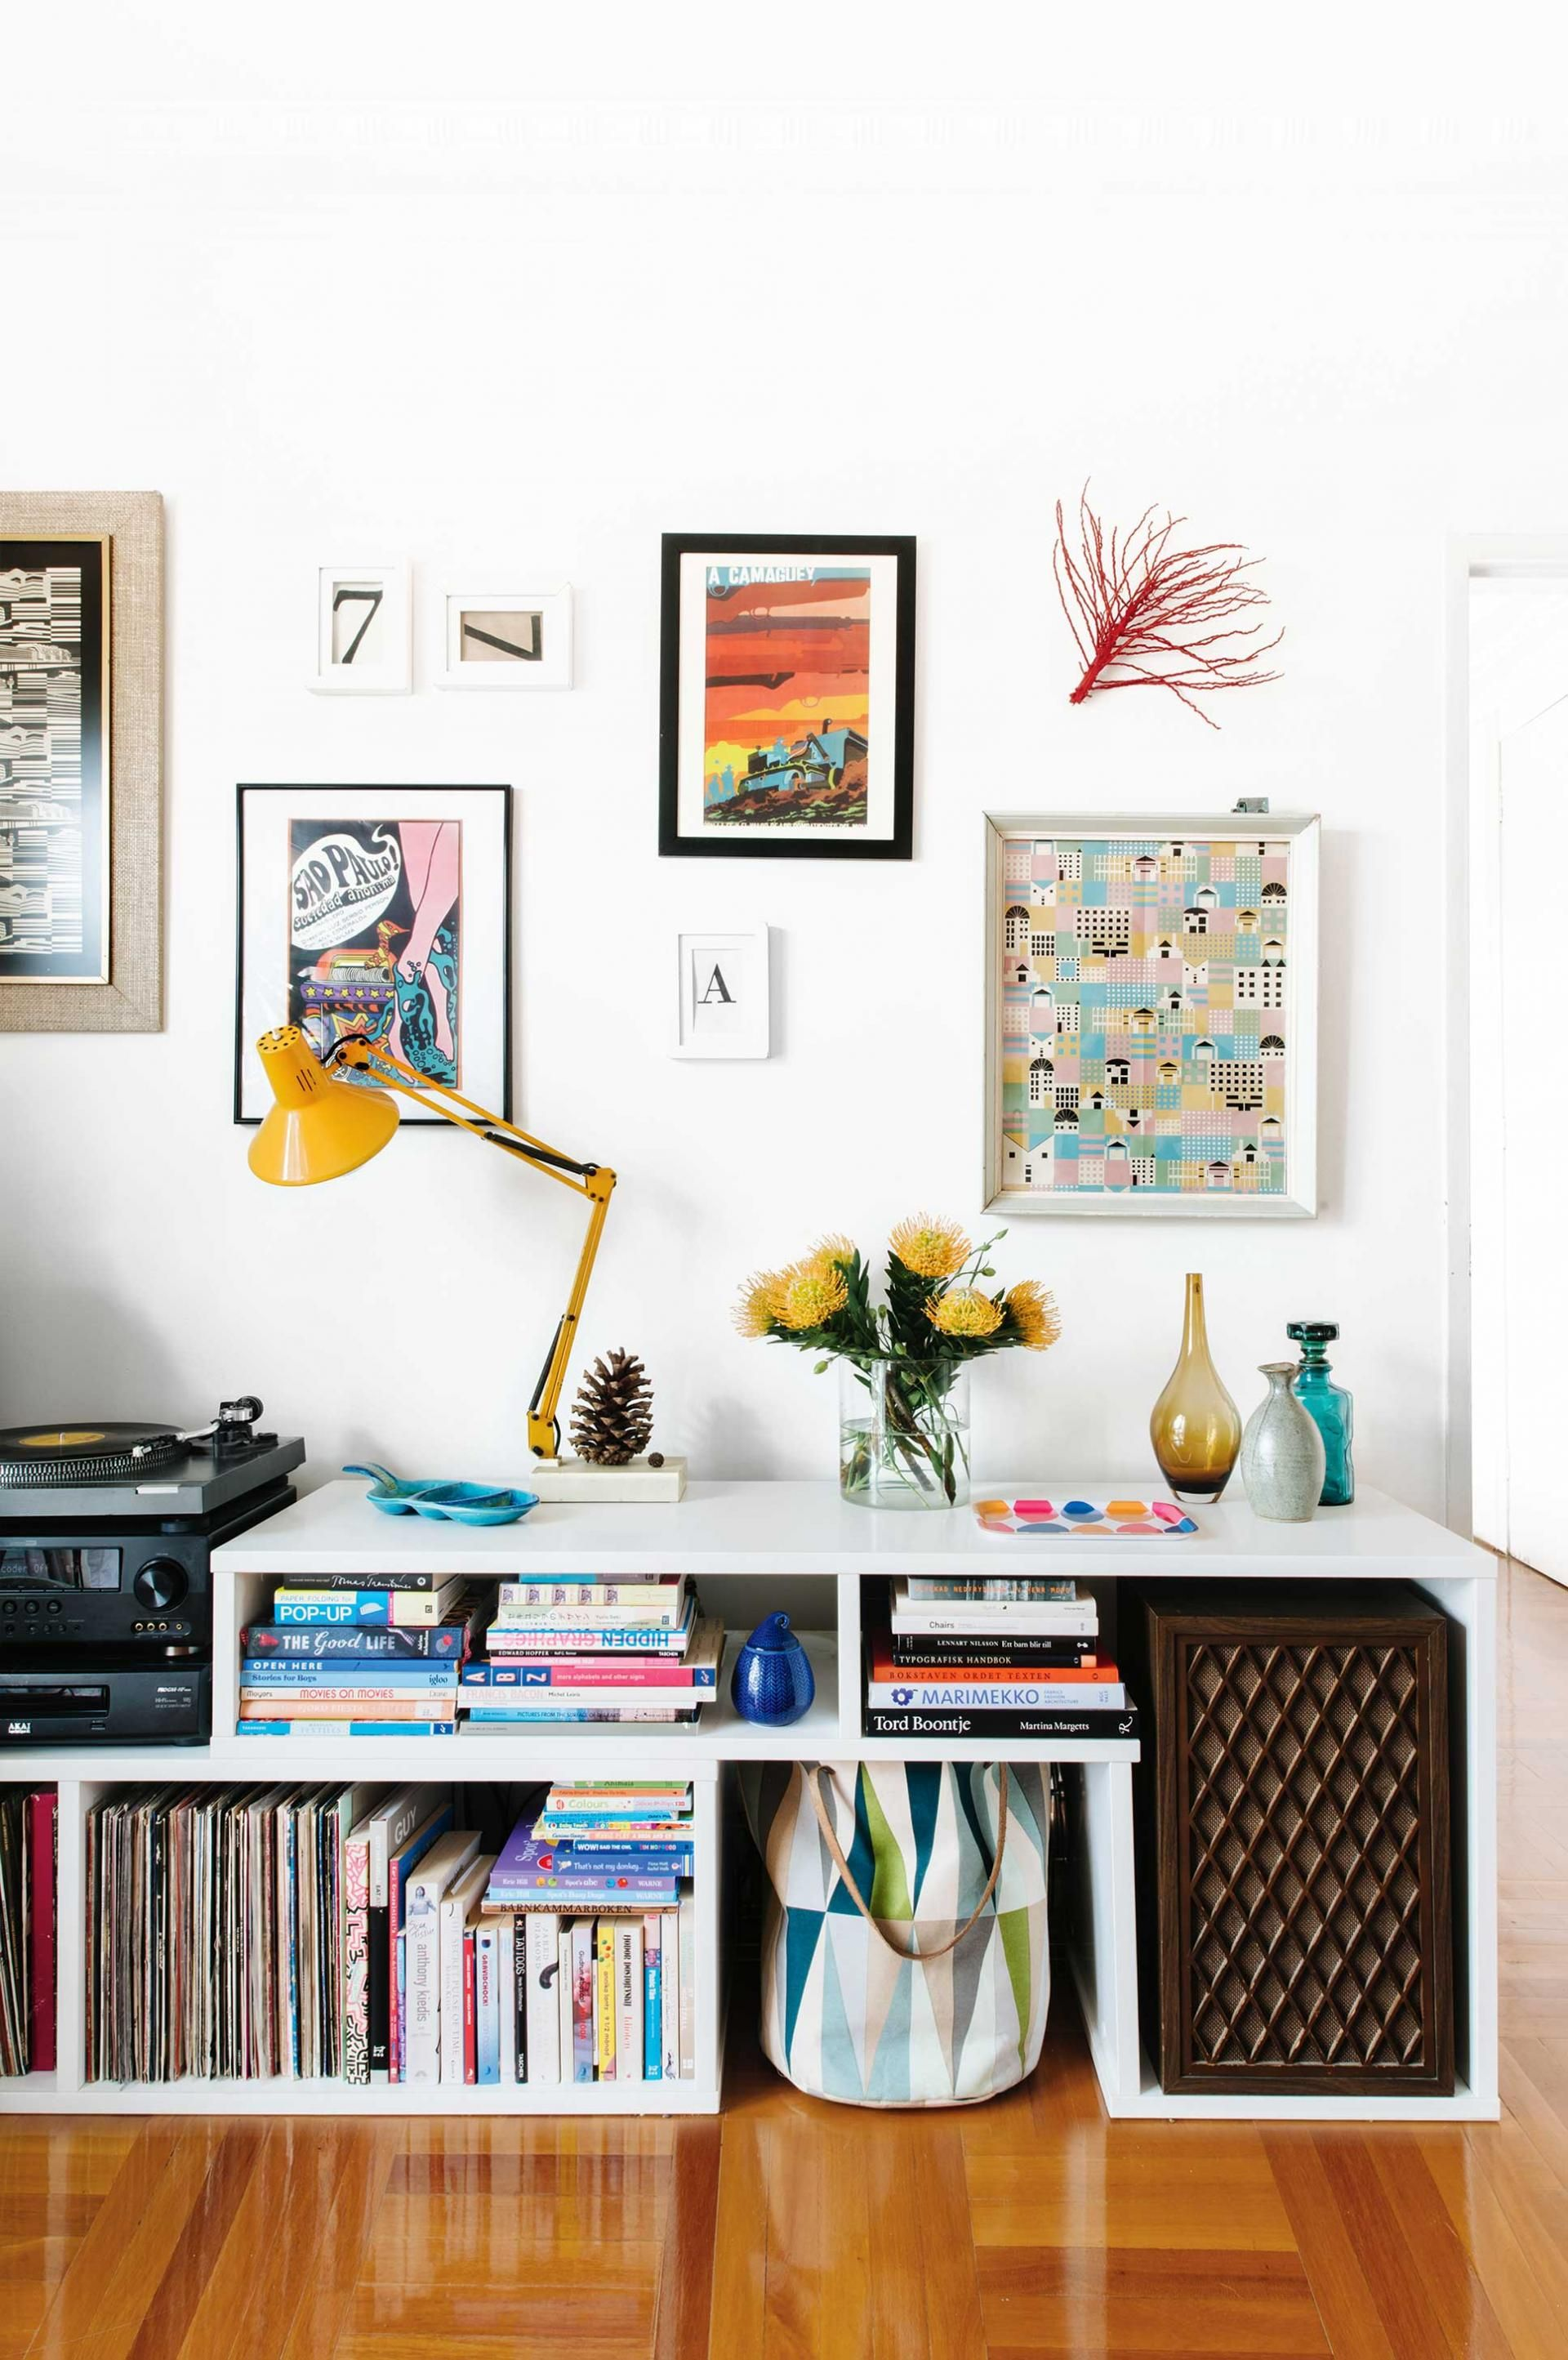 How To Decorate Your Home With Personality: Smart Storage Features In This Personality-packed Apartment From The December 2015 Issue Of